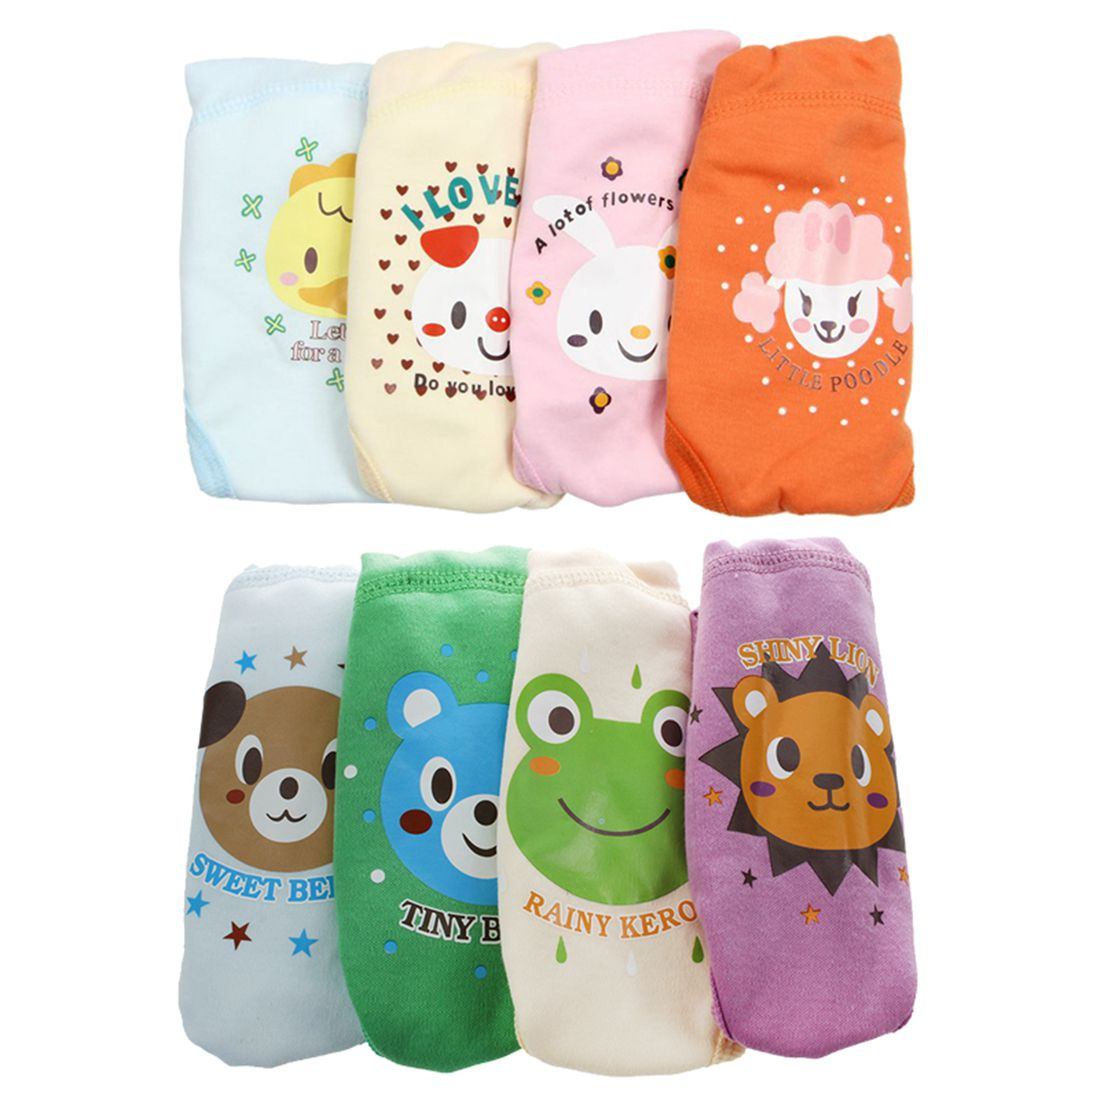 HOT SALE 4 X Baby Toddler Girls Boys Cute 4 Layers Waterproof Potty Training Pants reusable 6-12m